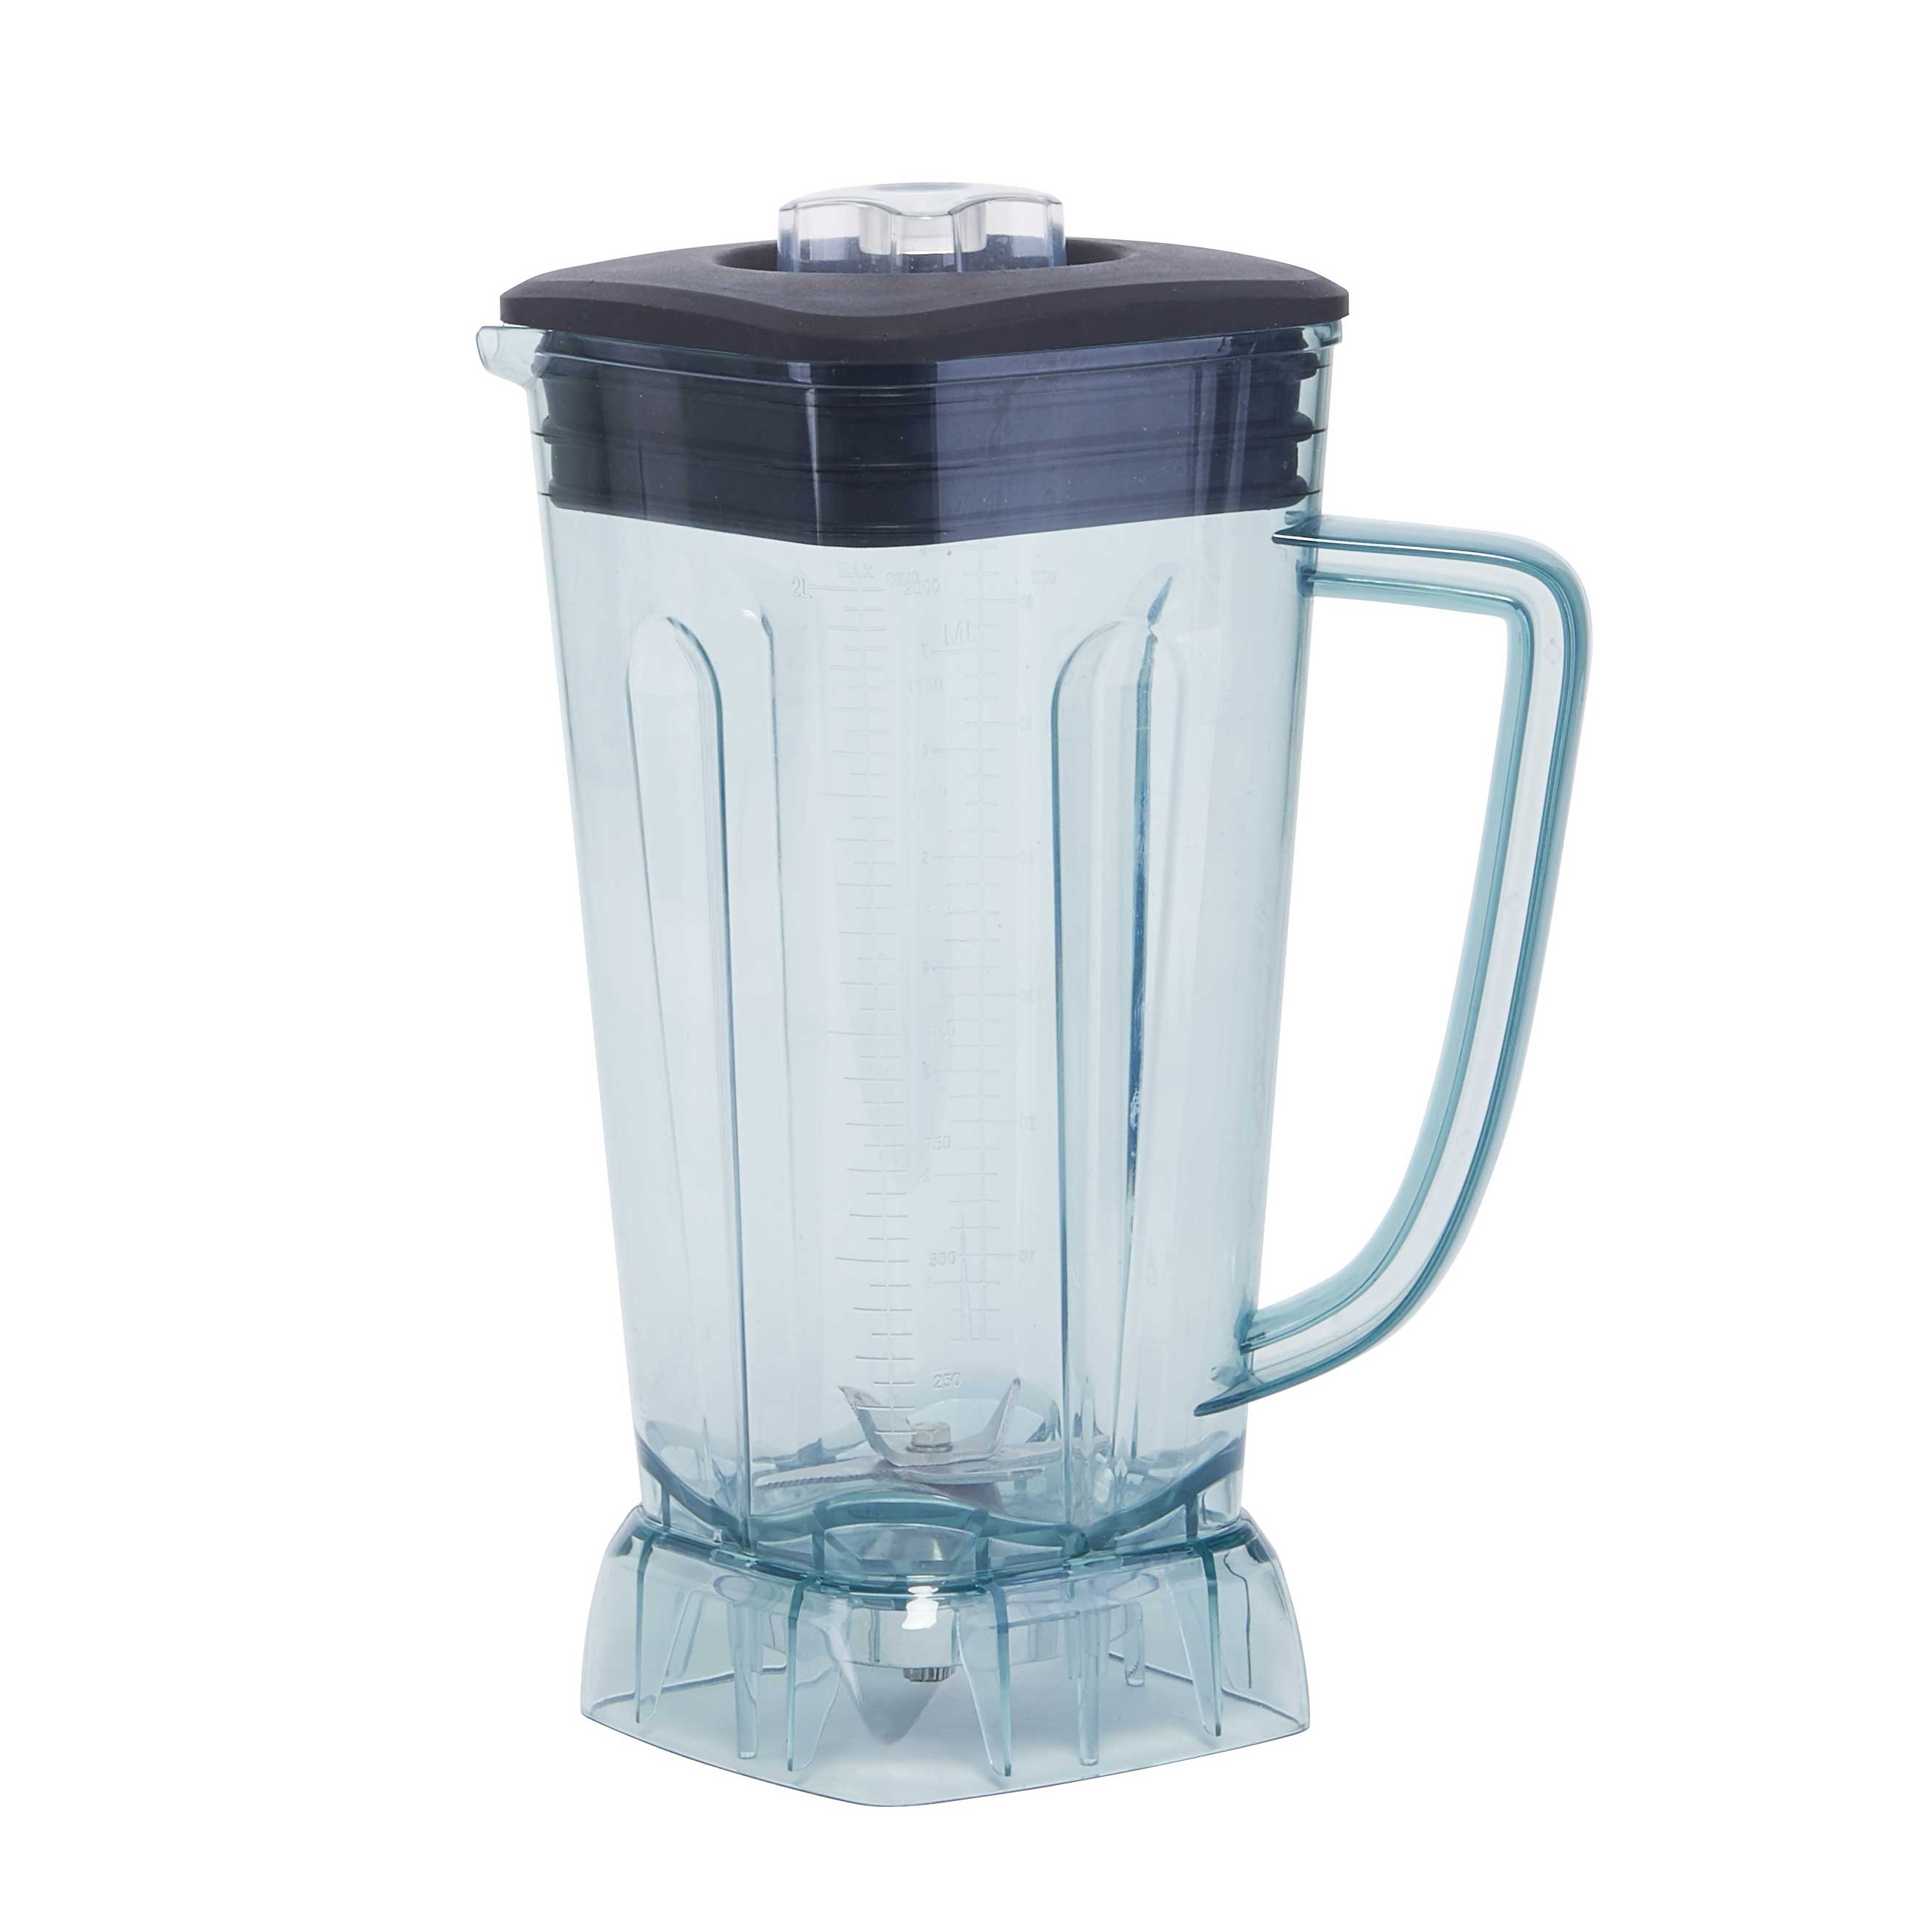 Winco XLB1000P2 blender container